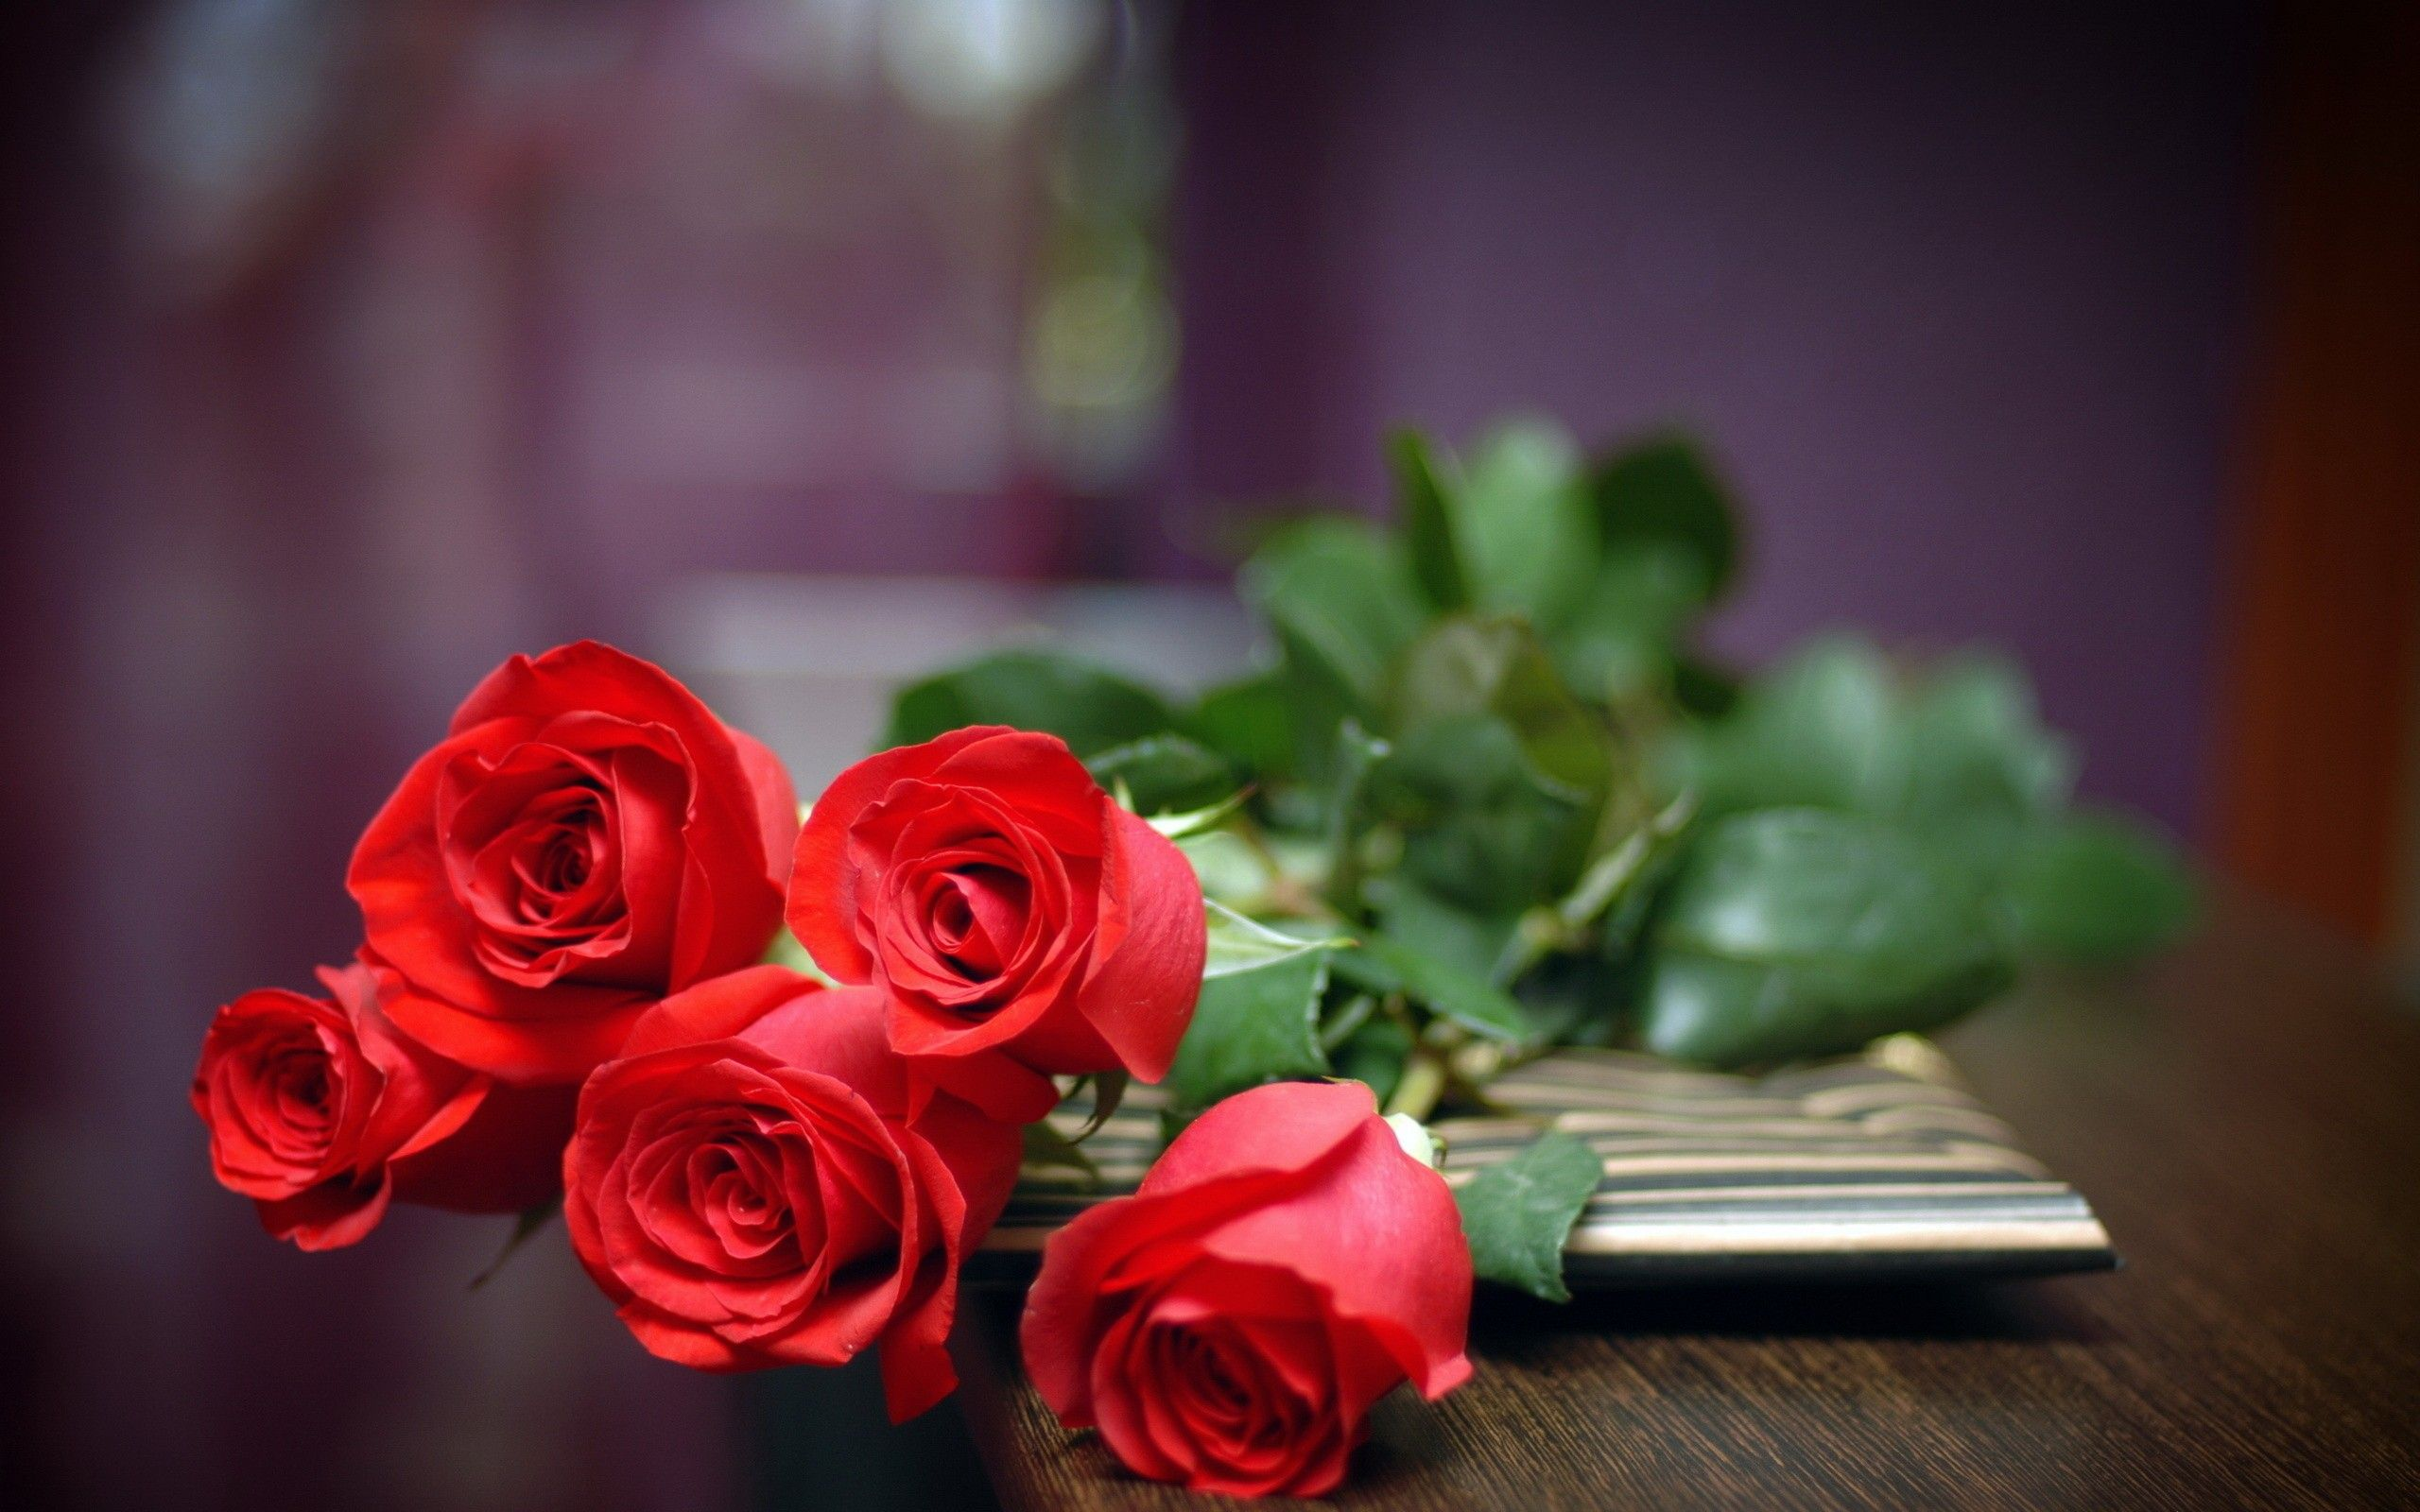 Bouquet of red roses wallpapers floral delivery all wallpapers nature flowers red petals stems roses still life still life close close up macro valentine holidays izmirmasajfo Images